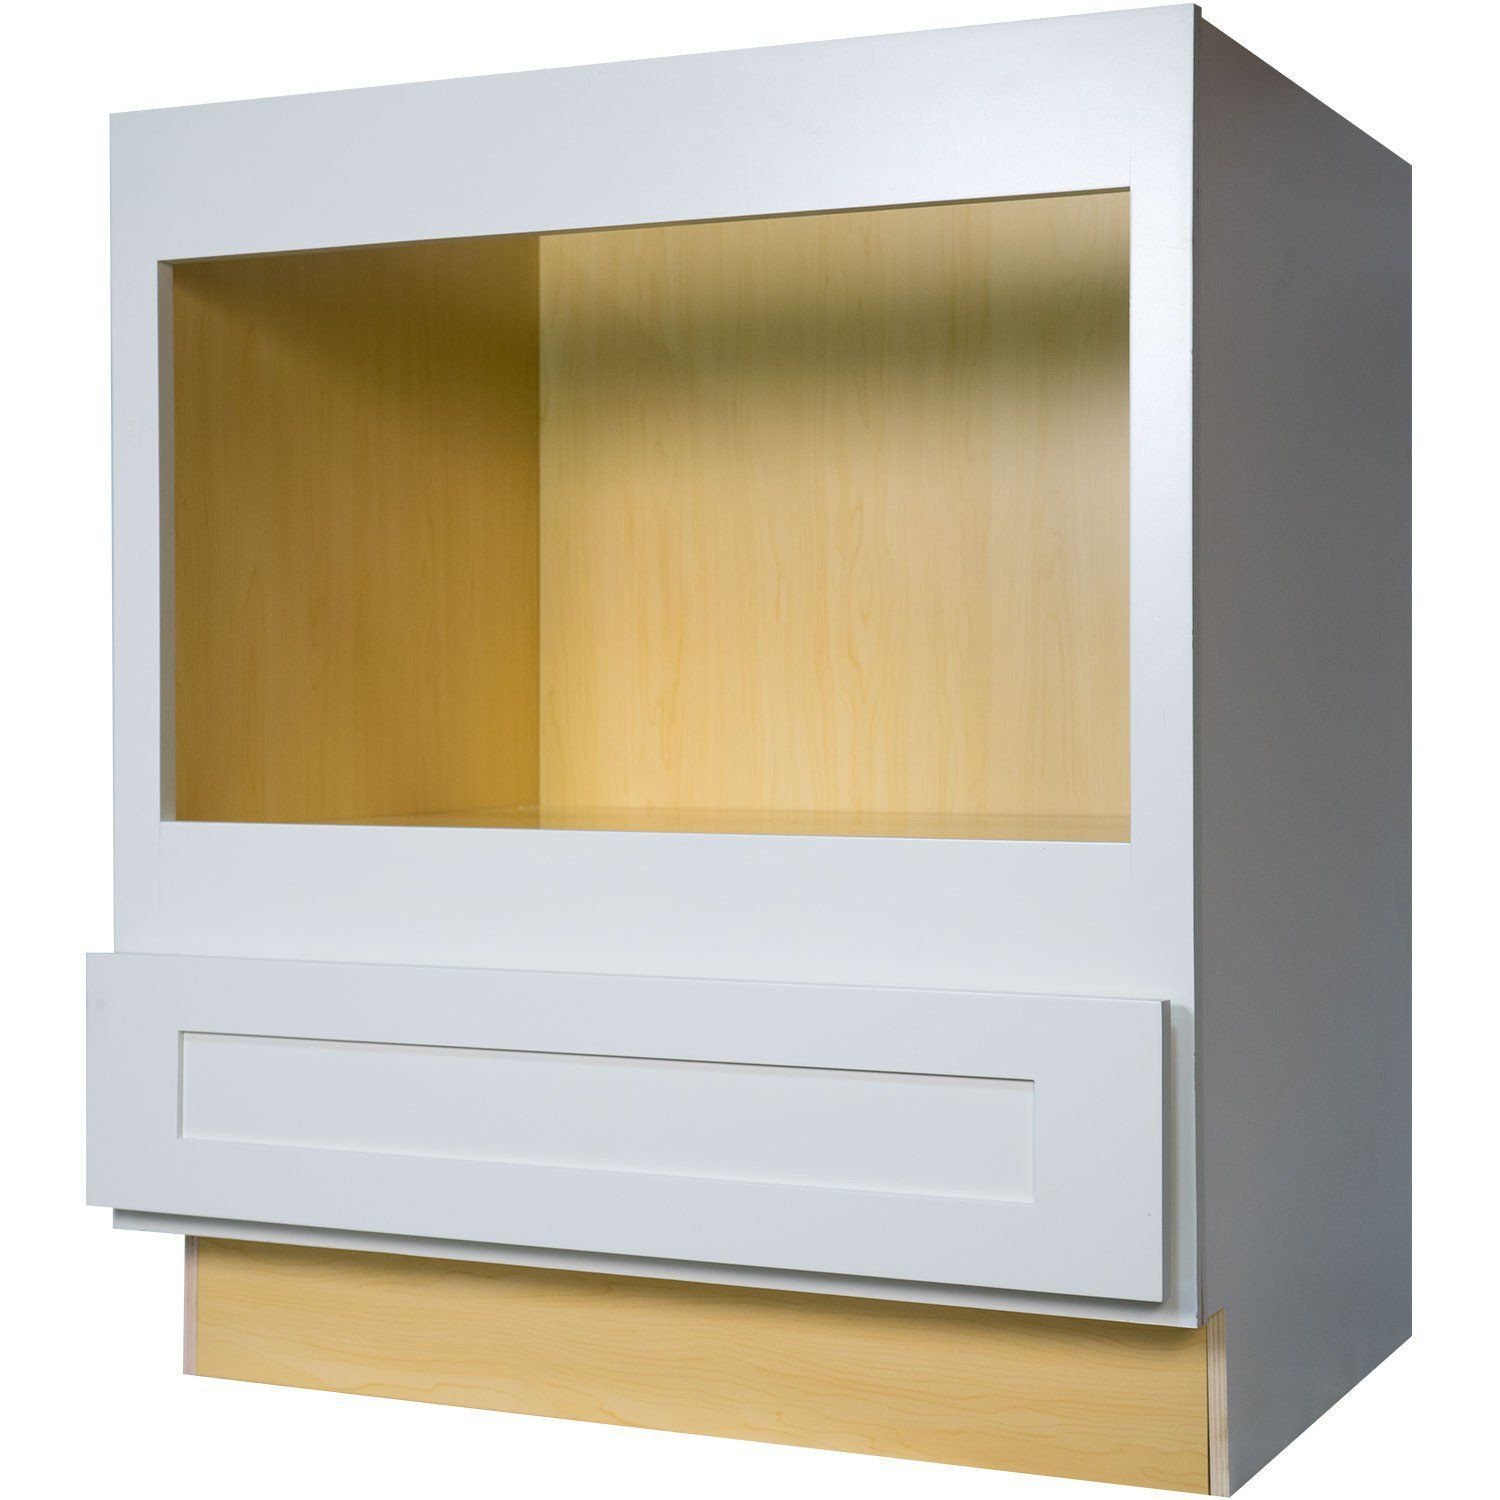 Lt P Gt The 30 Inch Microwave Base Cabinet In Gorgeous Shaker White Provides A Solution To Those Who Are Limi Base Cabinets Cabinet Built In Microwave Cabinet